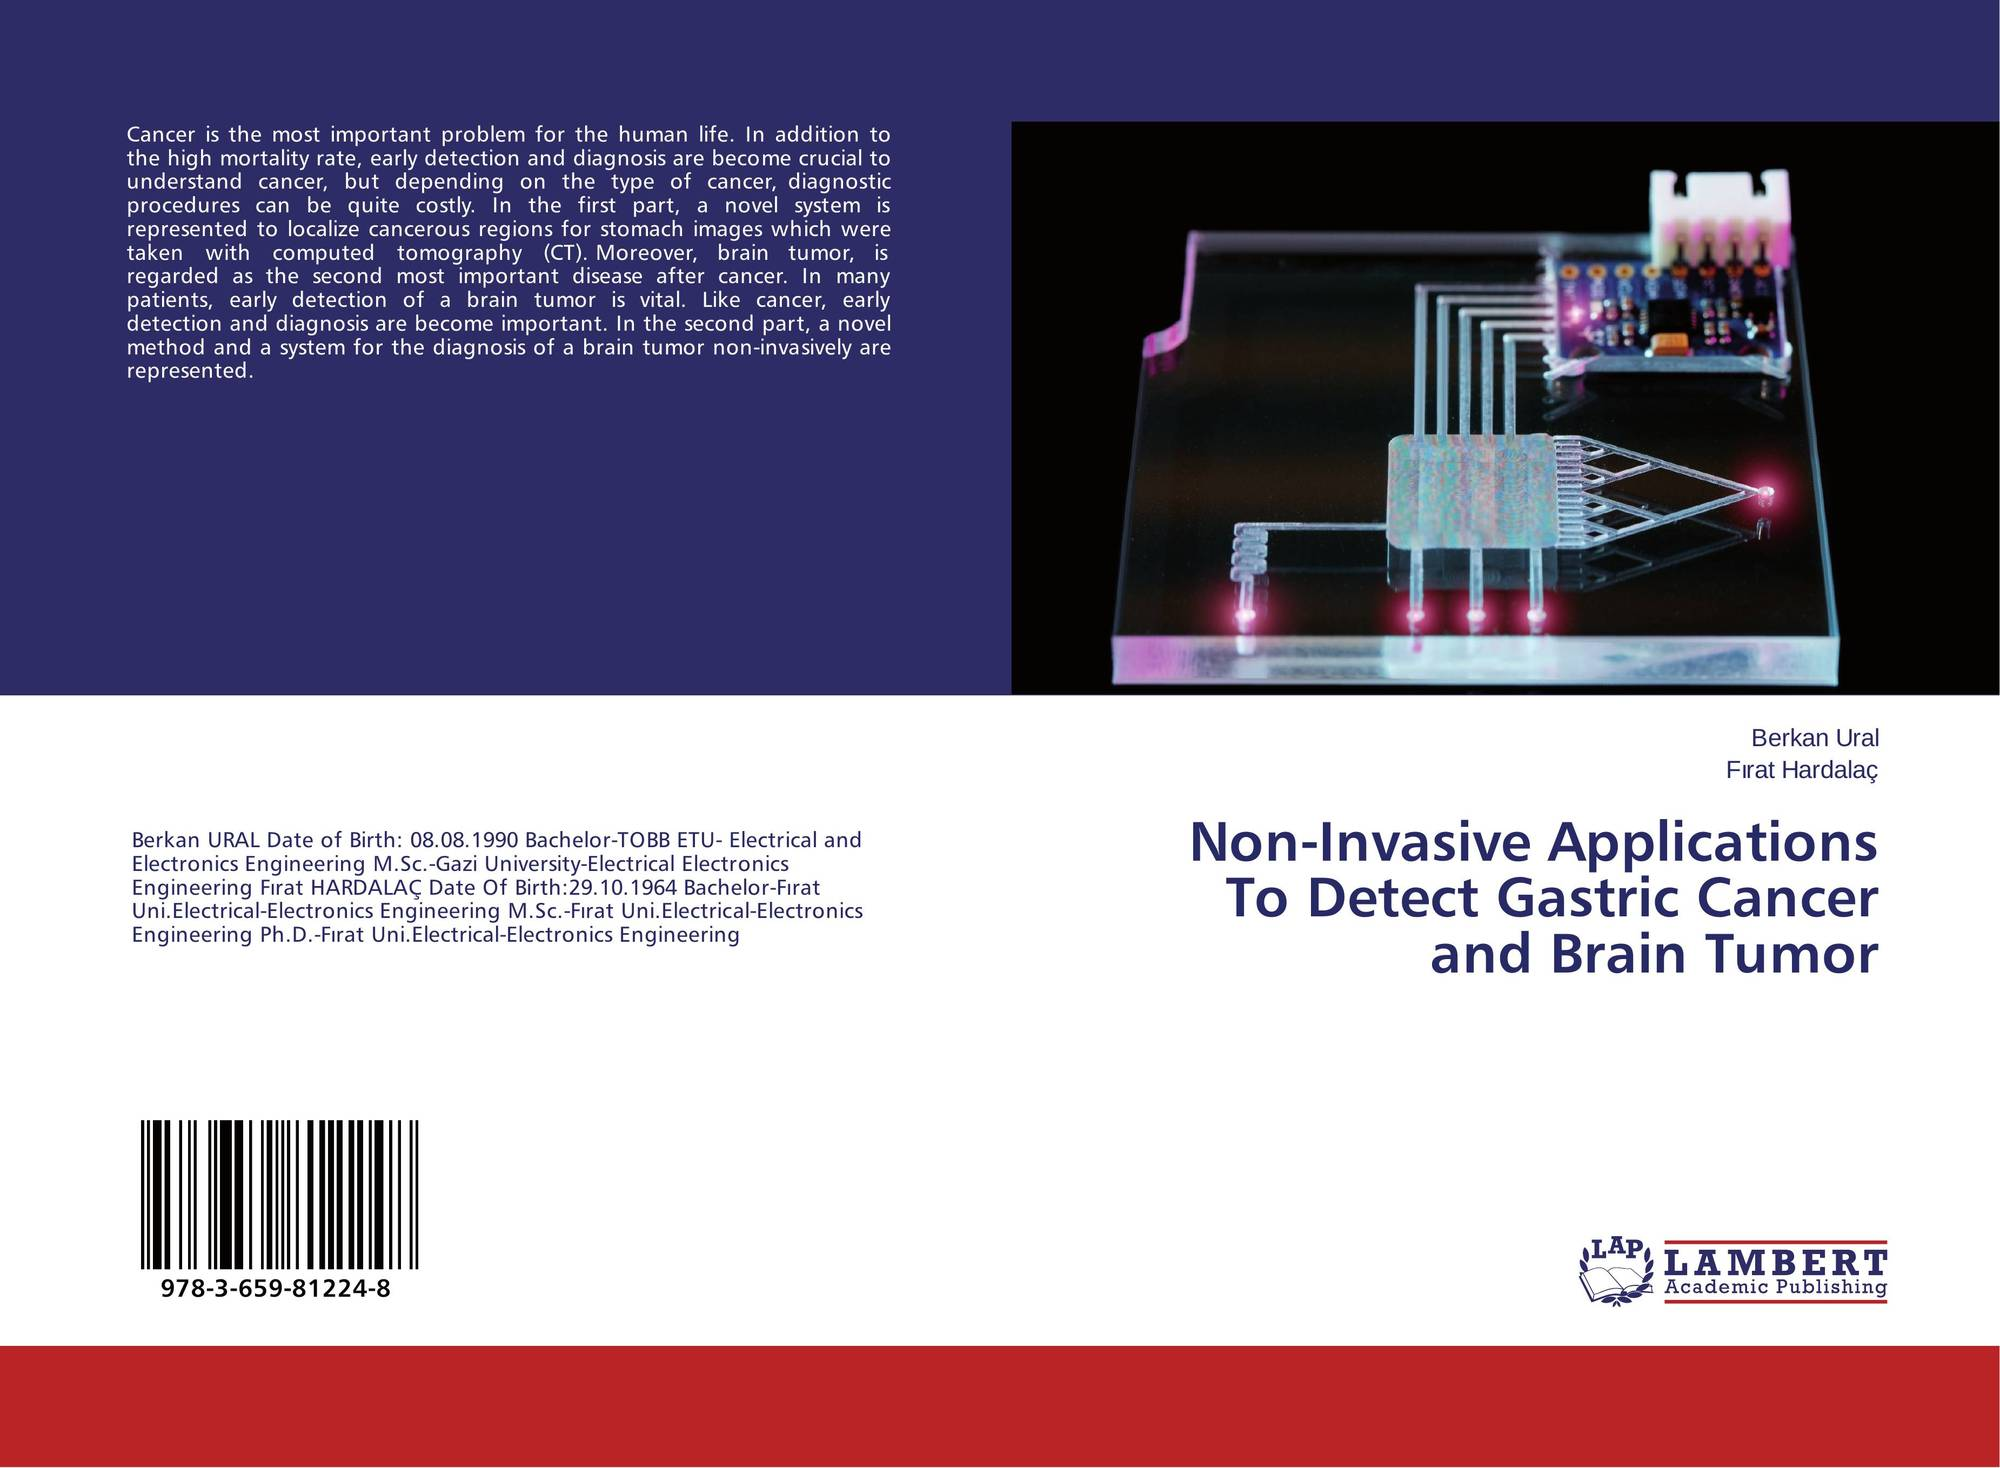 Non-Invasive Applications To Detect Gastric Cancer and ...